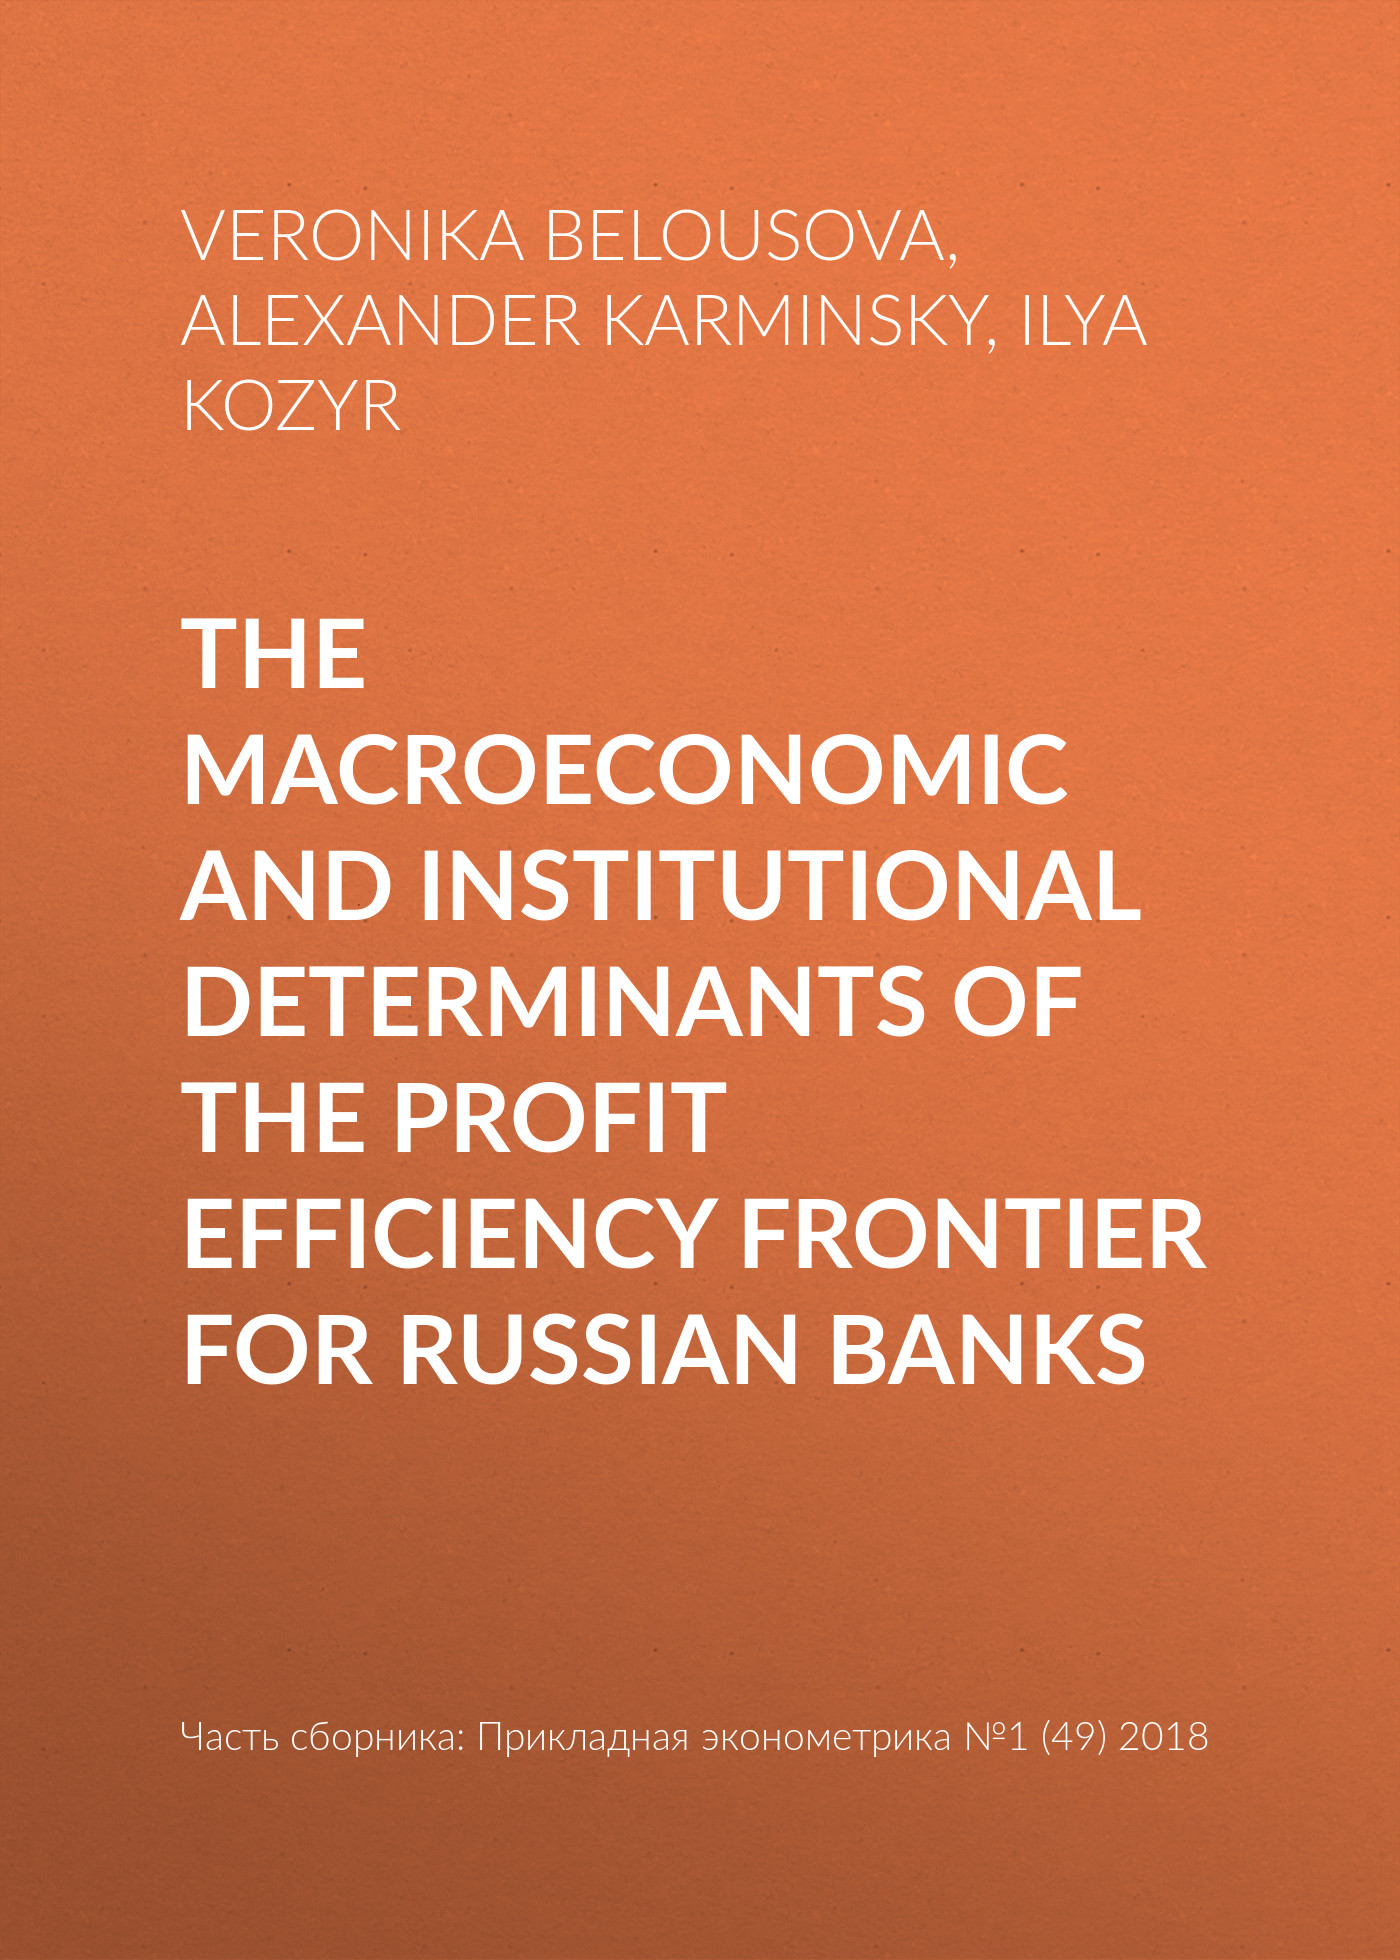 Veronika Belousova The macroeconomic and institutional determinants of the profit efficiency frontier for Russian banks hd2 5 nylon sea fishing line brown 500m